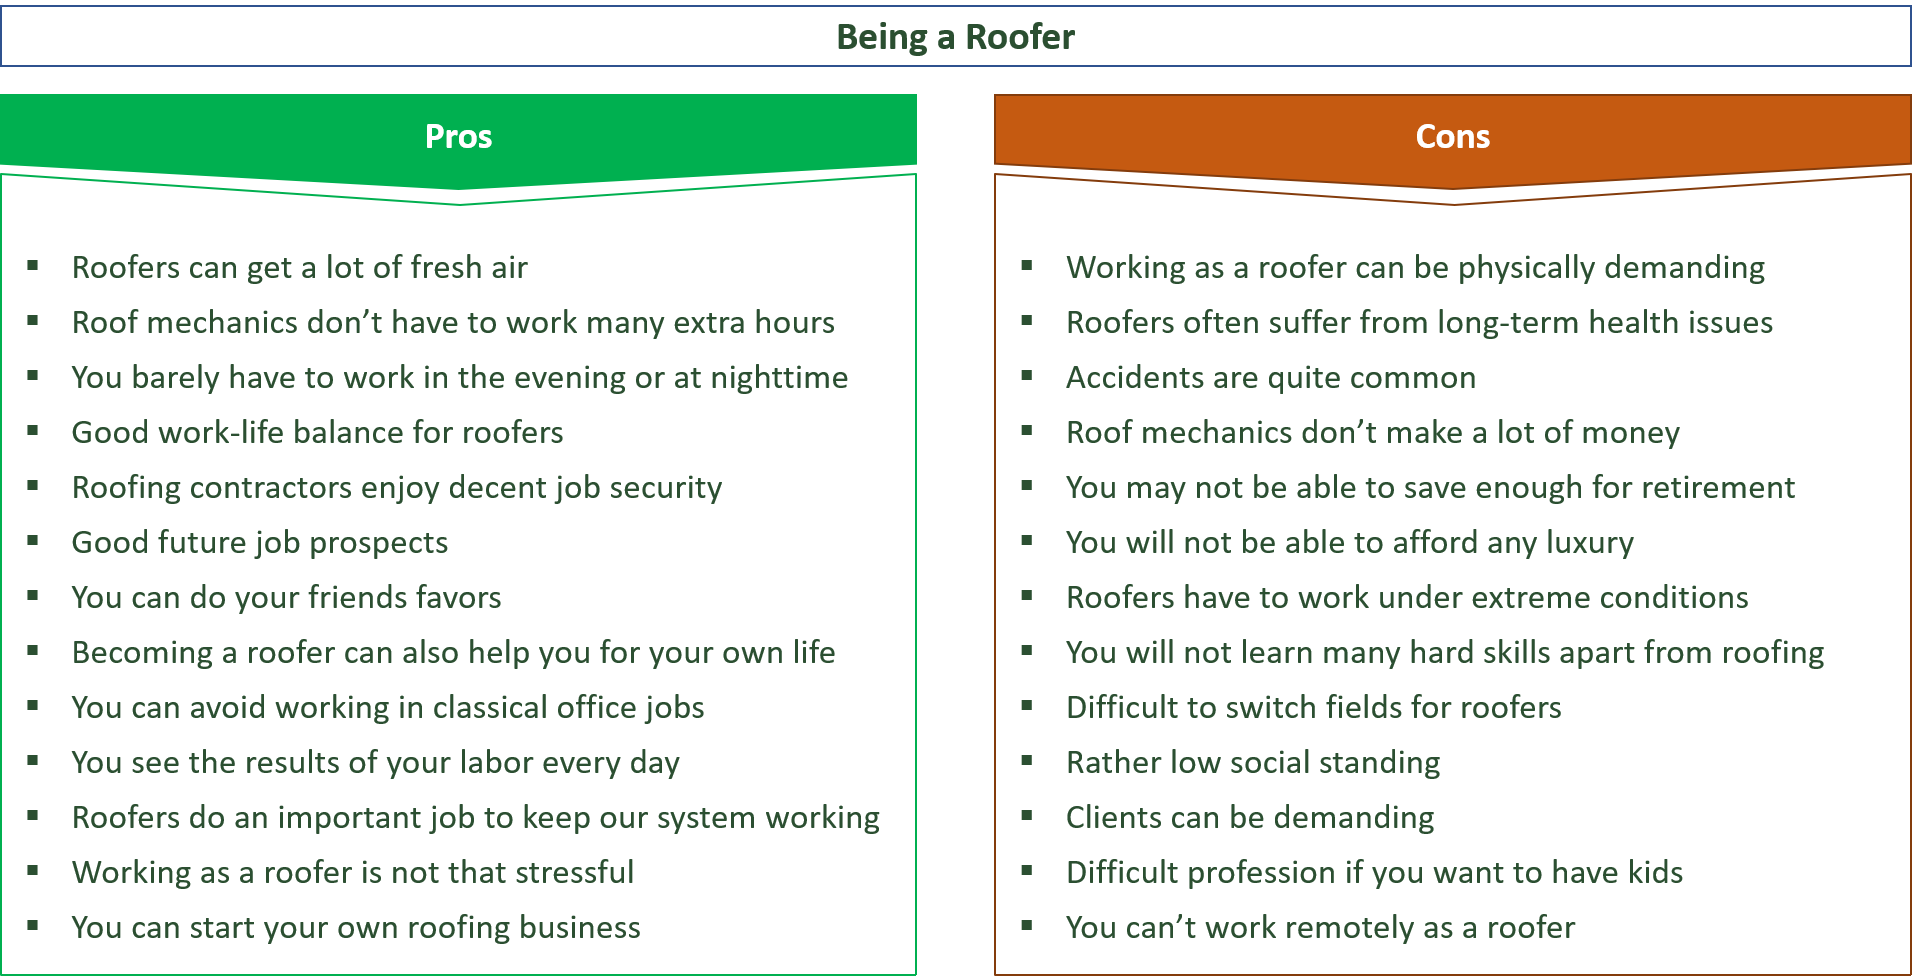 advantages and disadvantages of being a roofer